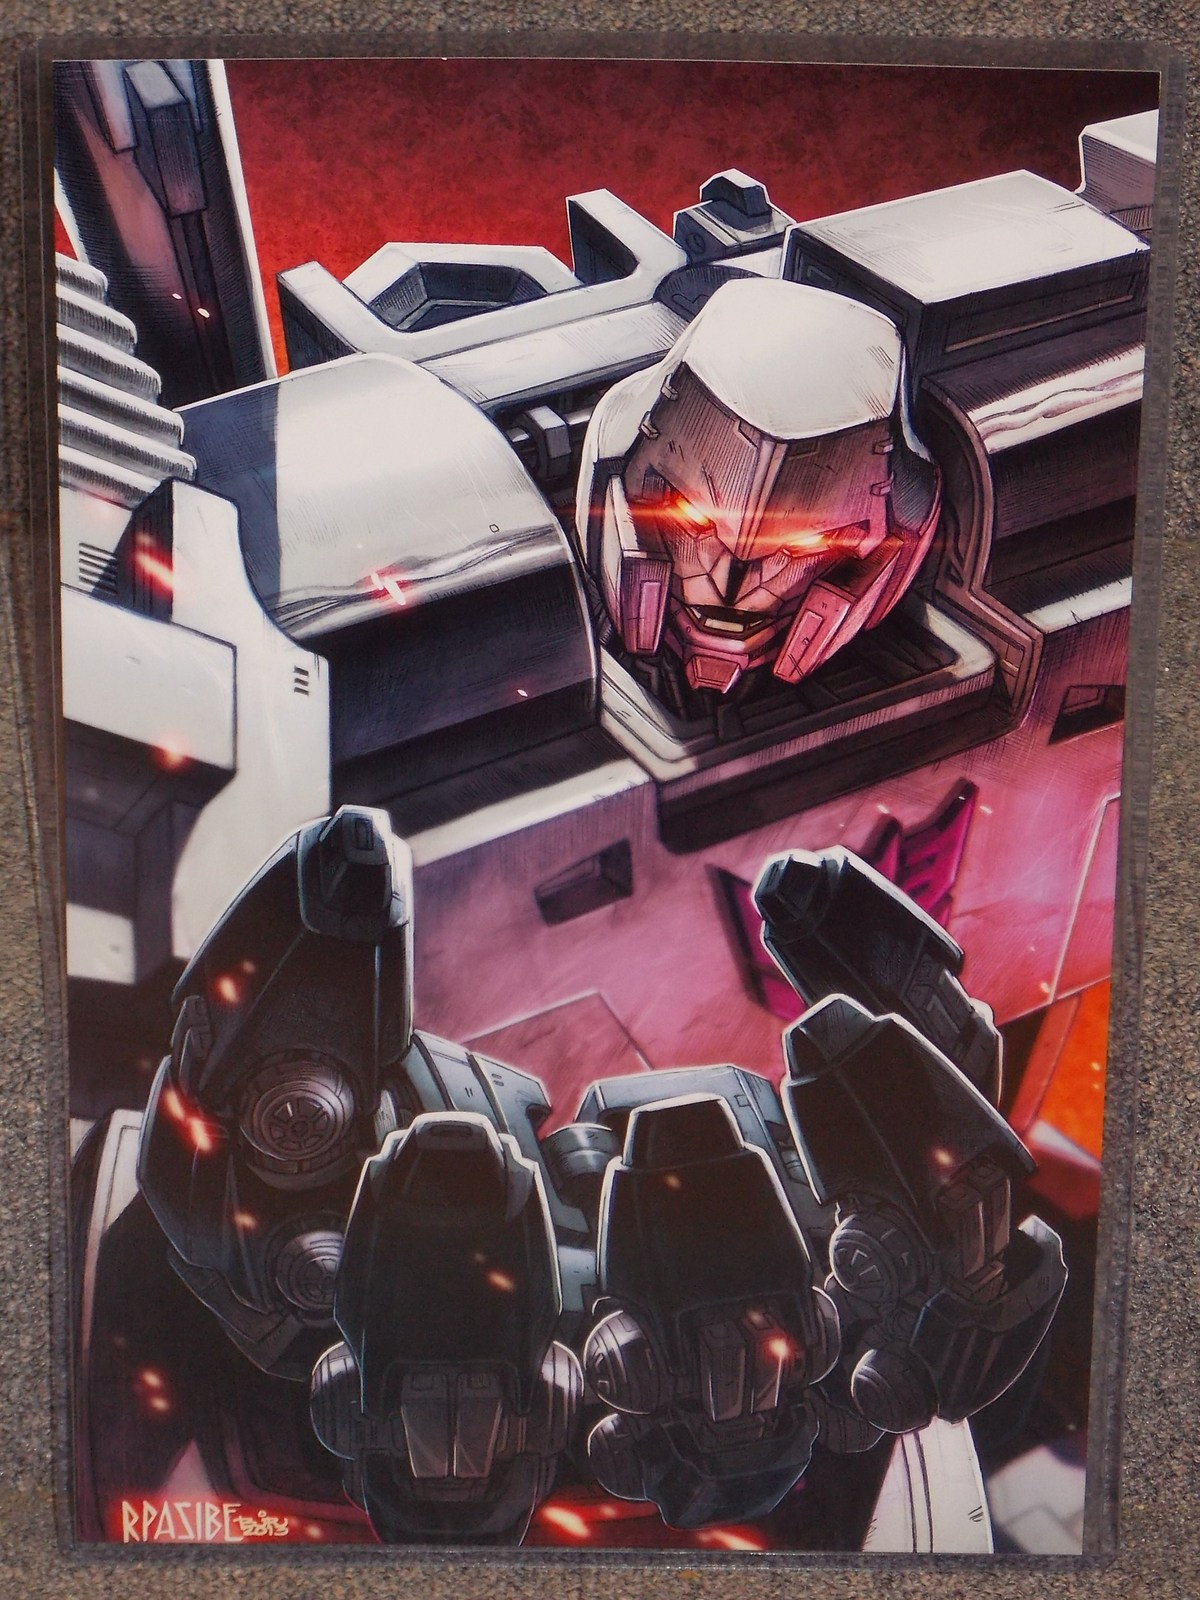 Primary image for Transformers Megatron Glossy Print 11 x 17 In Hard Plastic Sleeve